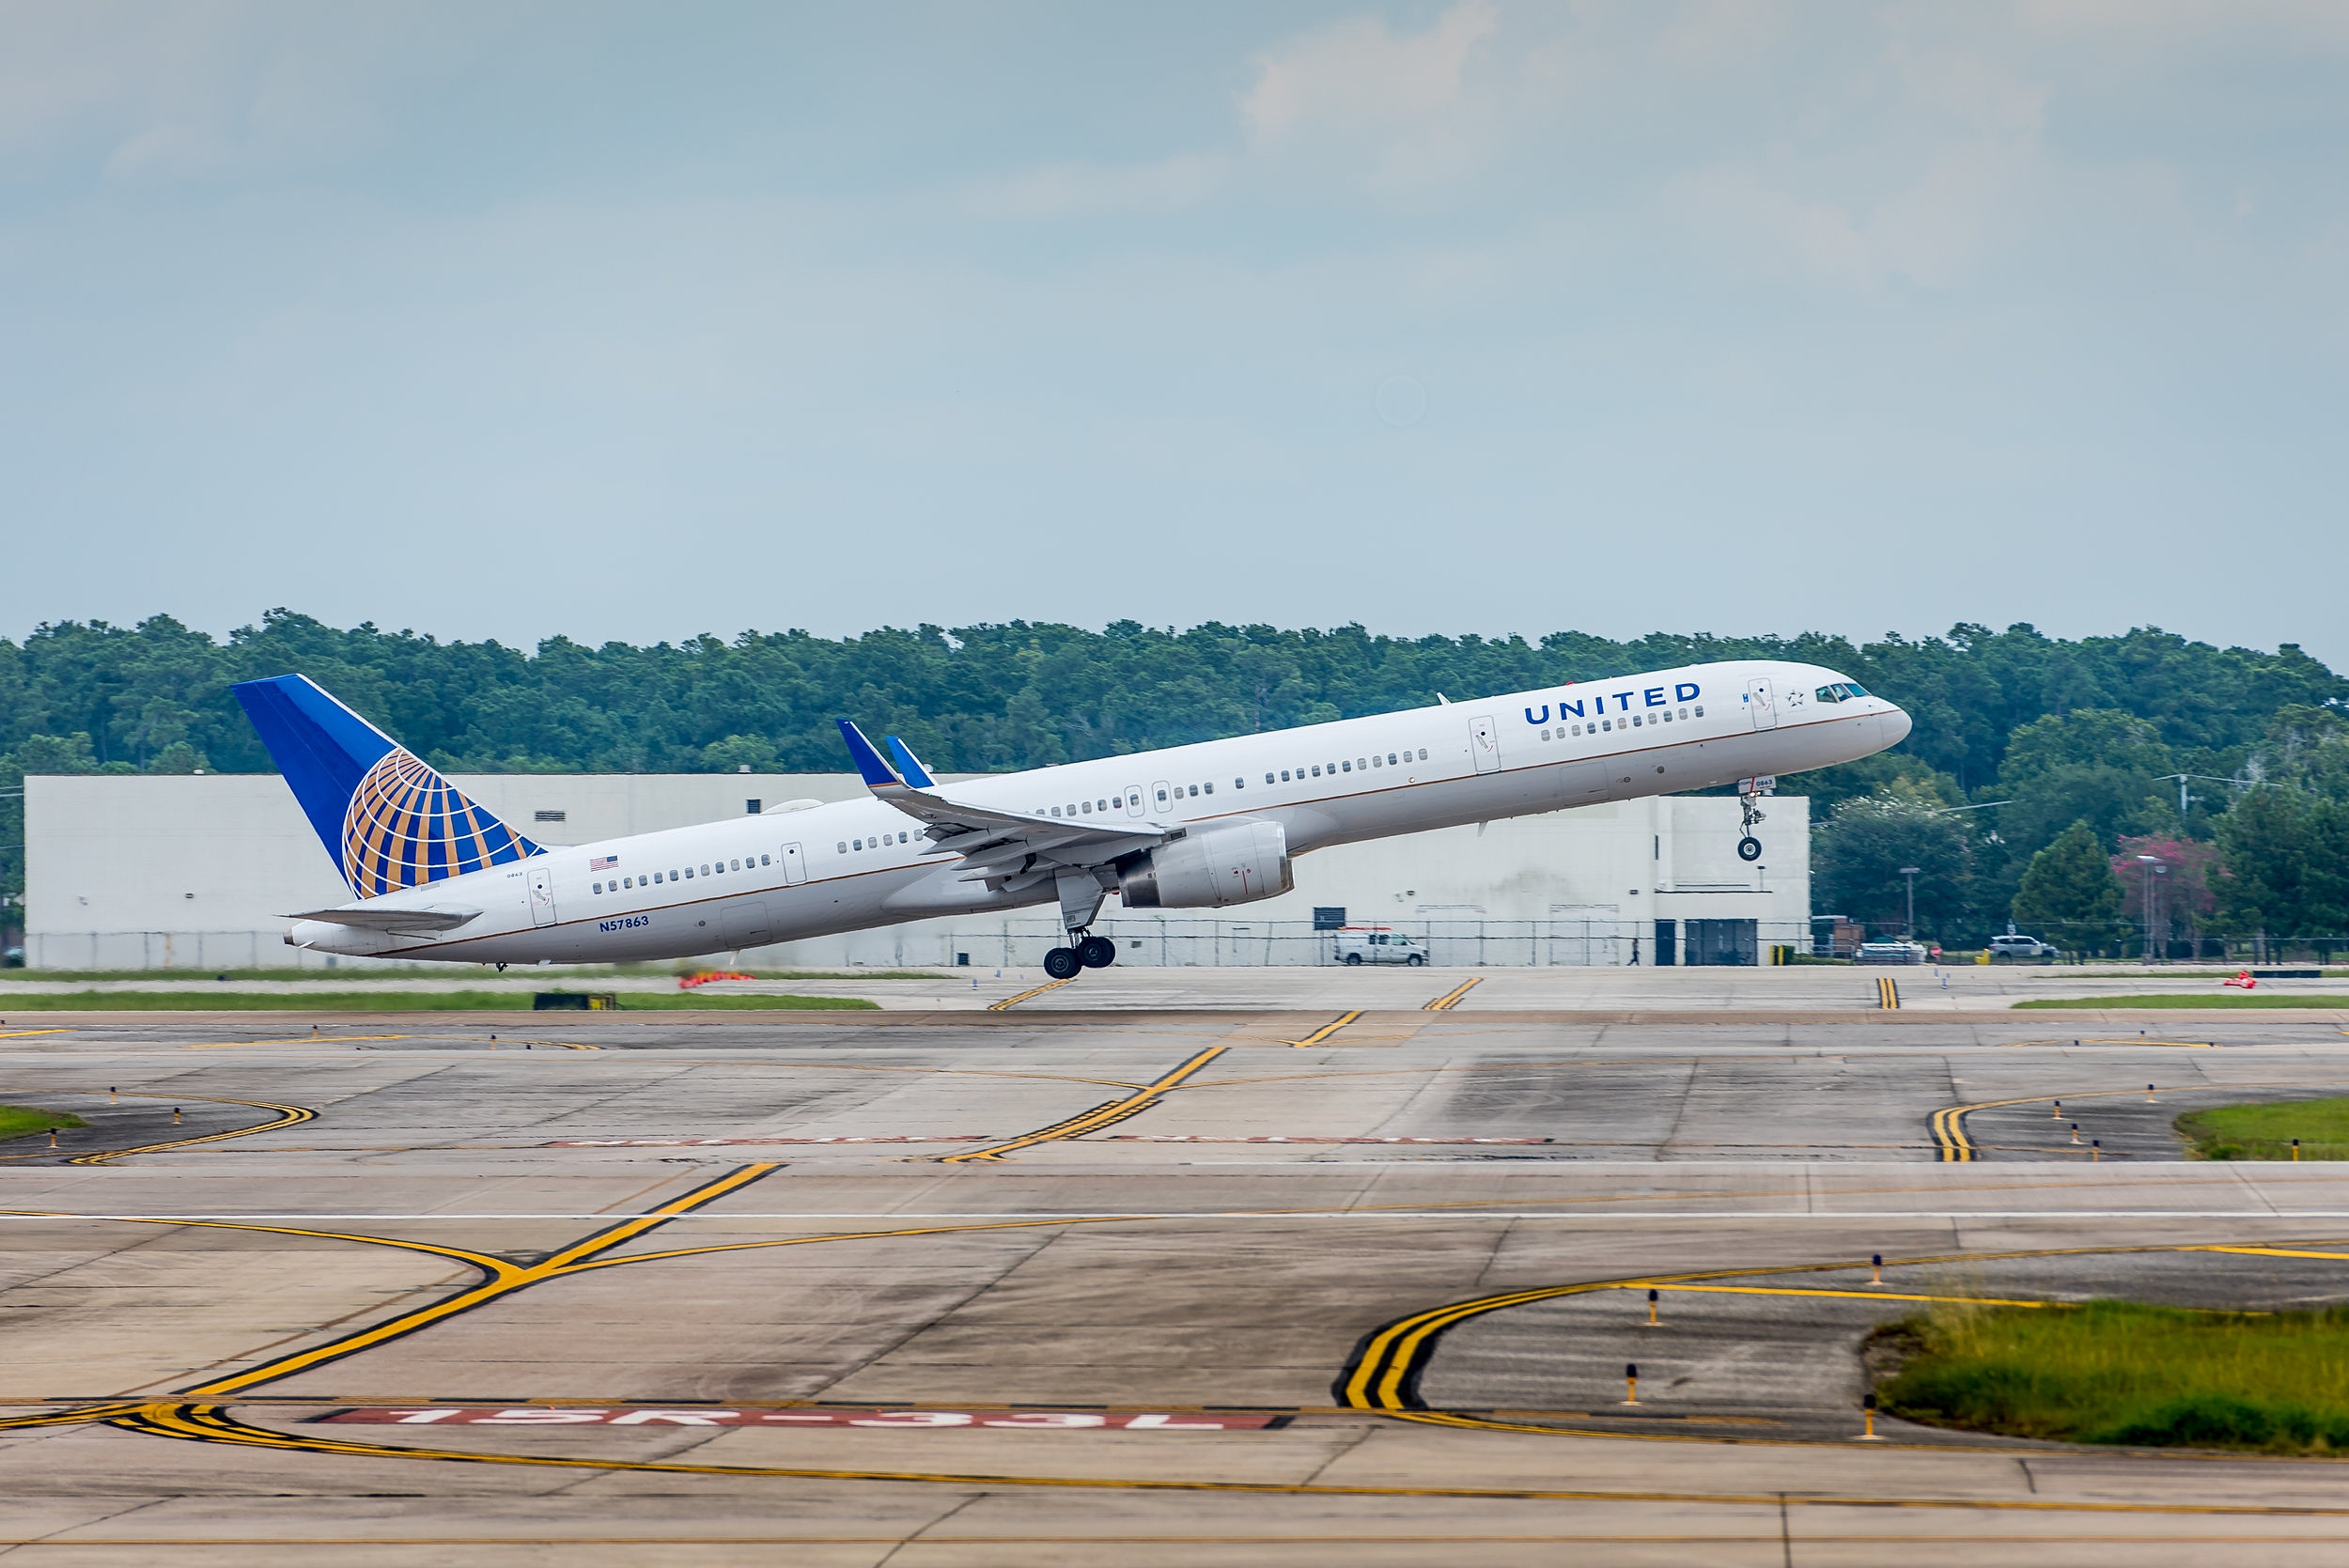 United Boeing 757 rotates off of runway 15L at Bush Intercontinental Airport in Houston